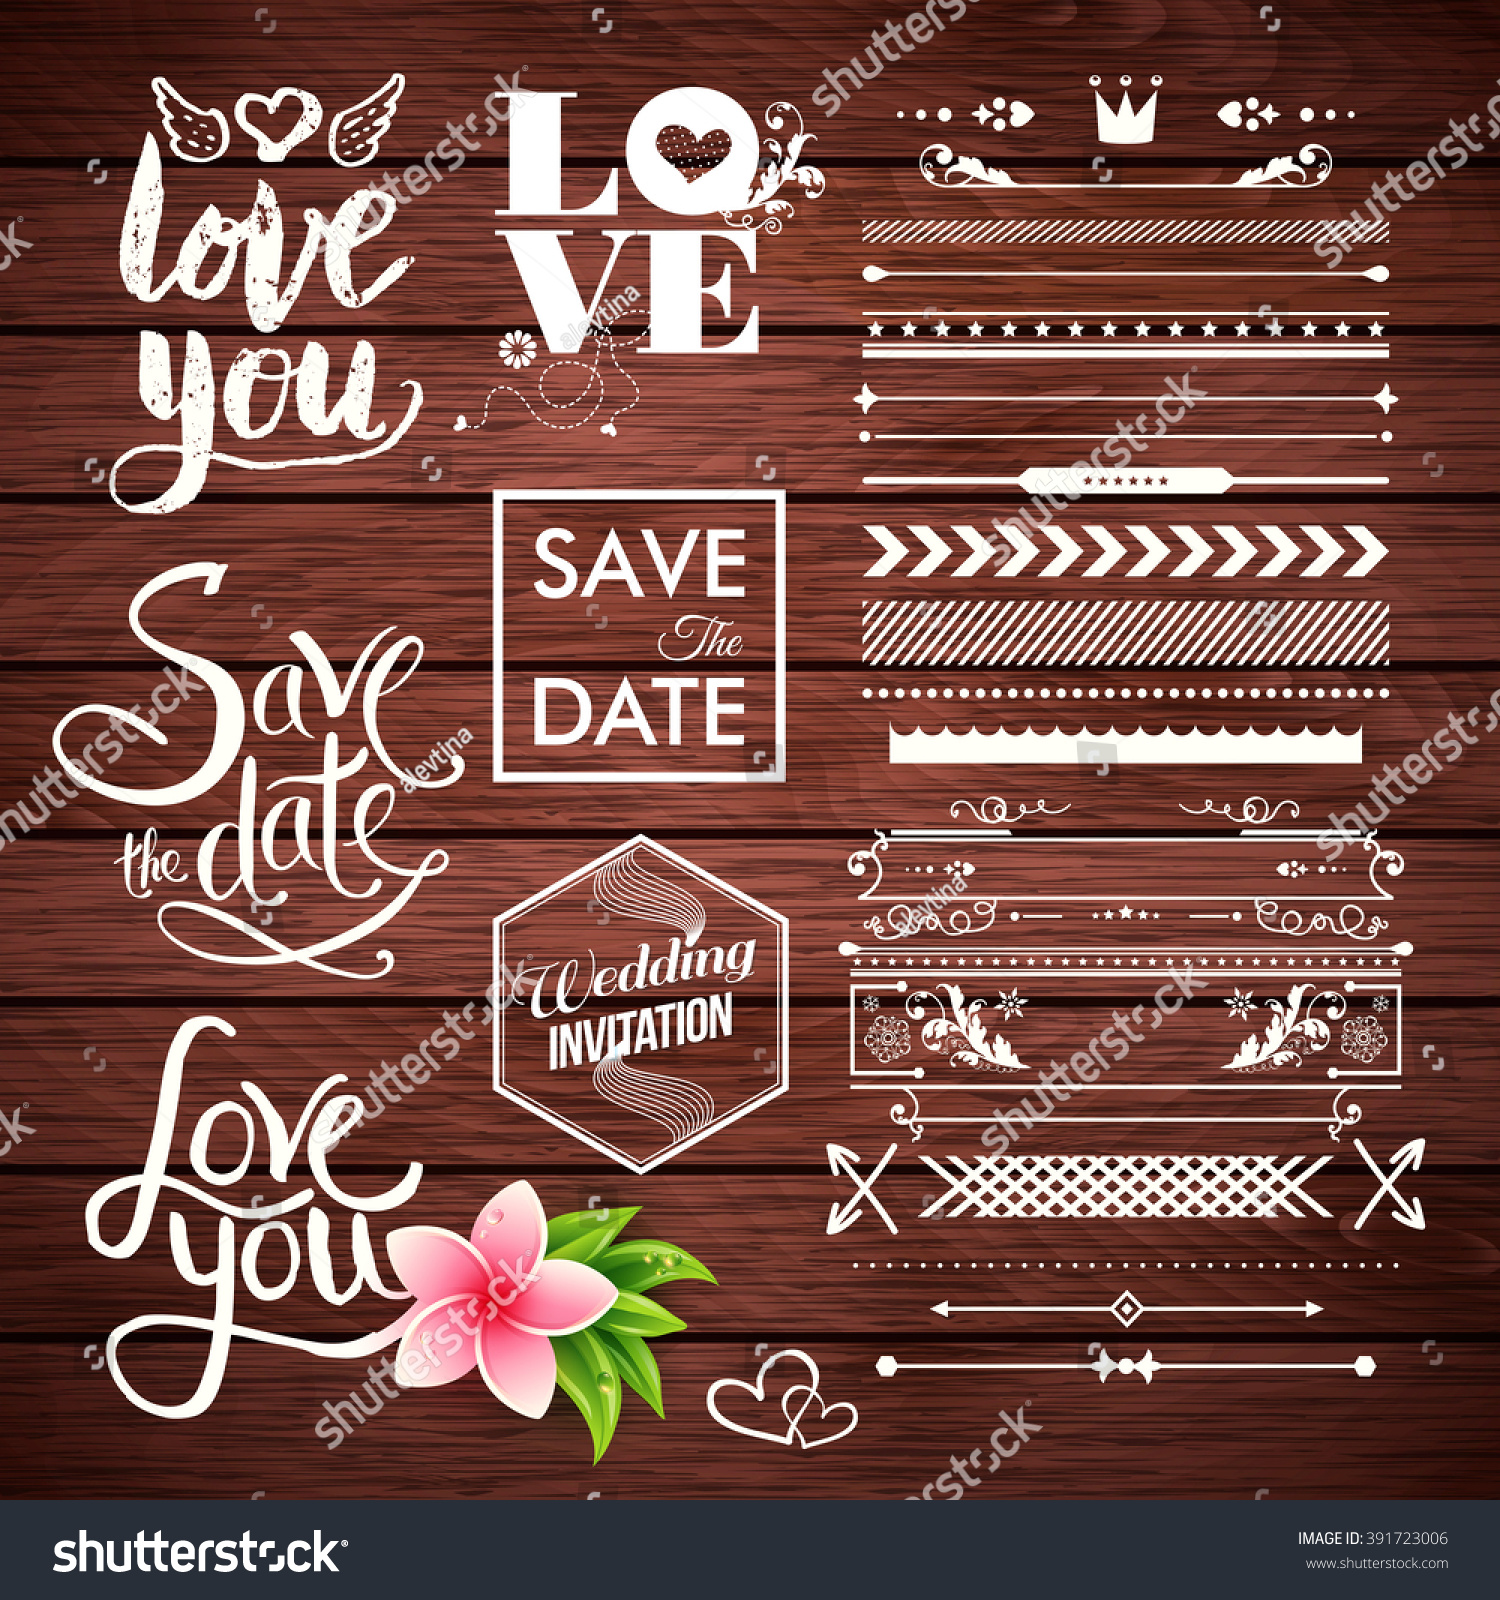 Vector Borders Lines Arrows Save Date Stock Vector (Royalty Free ...